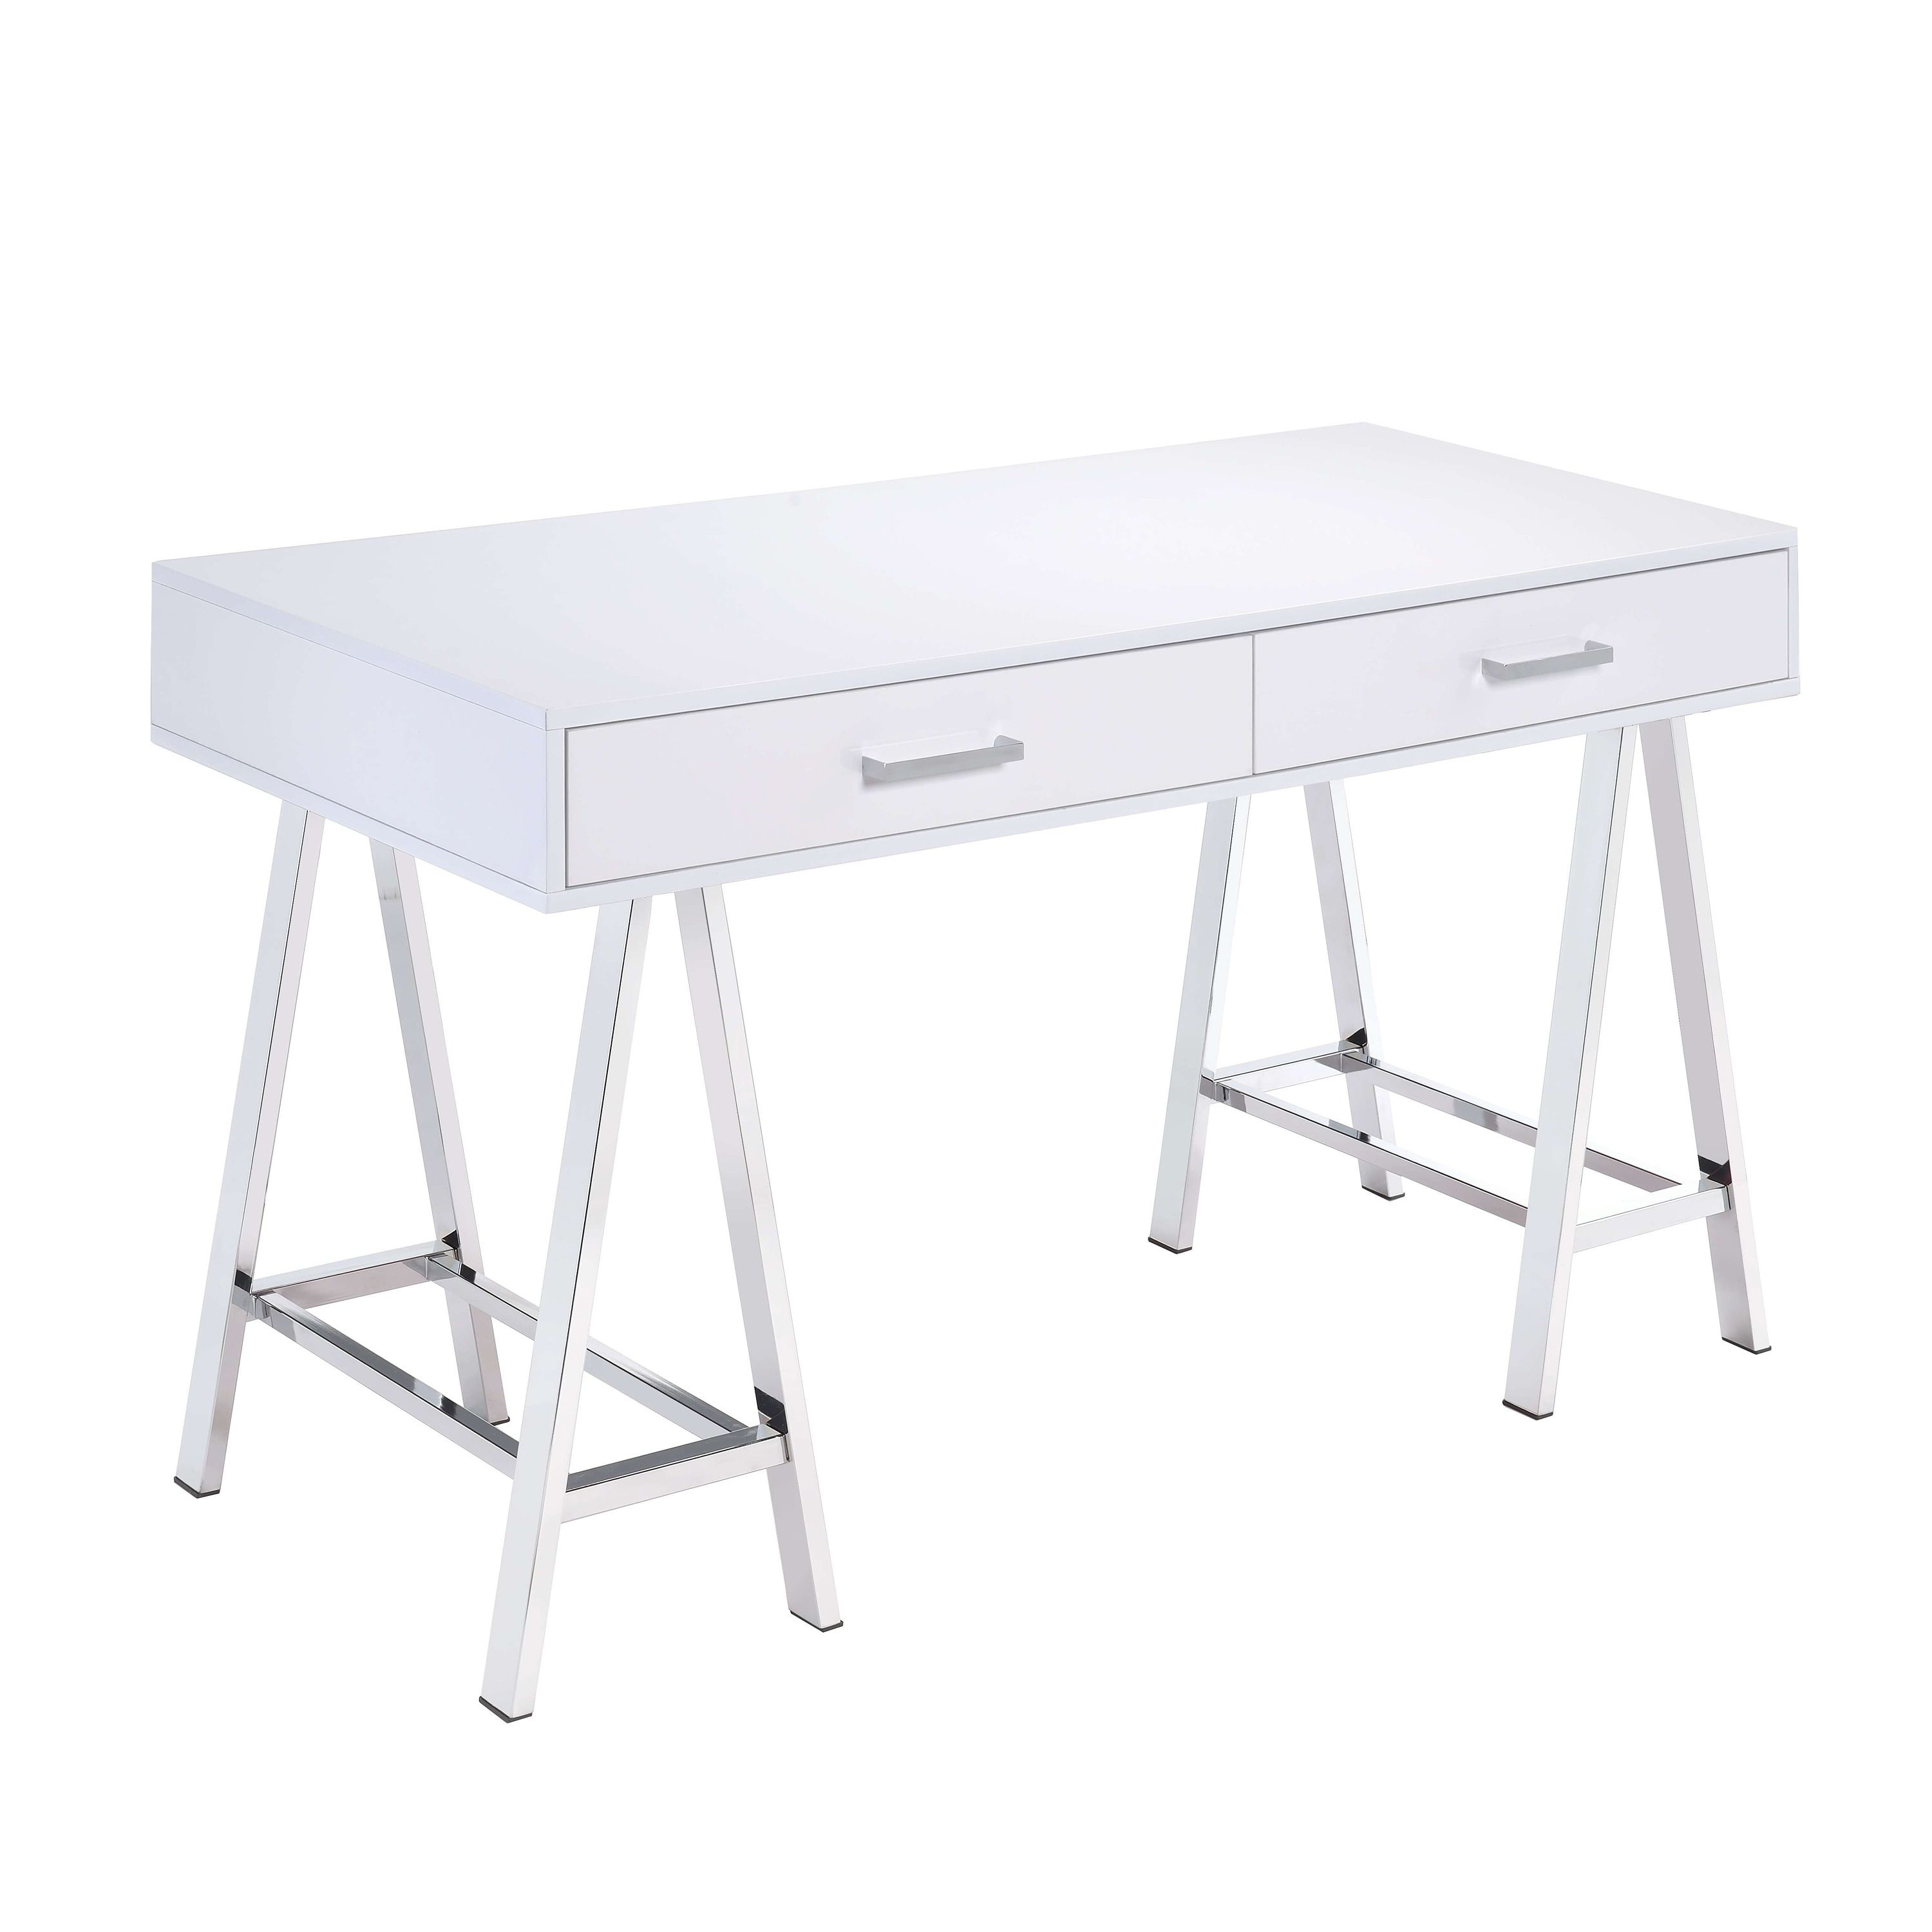 Rectangular Two Drawers Wooden Desk with Saw horse Metal